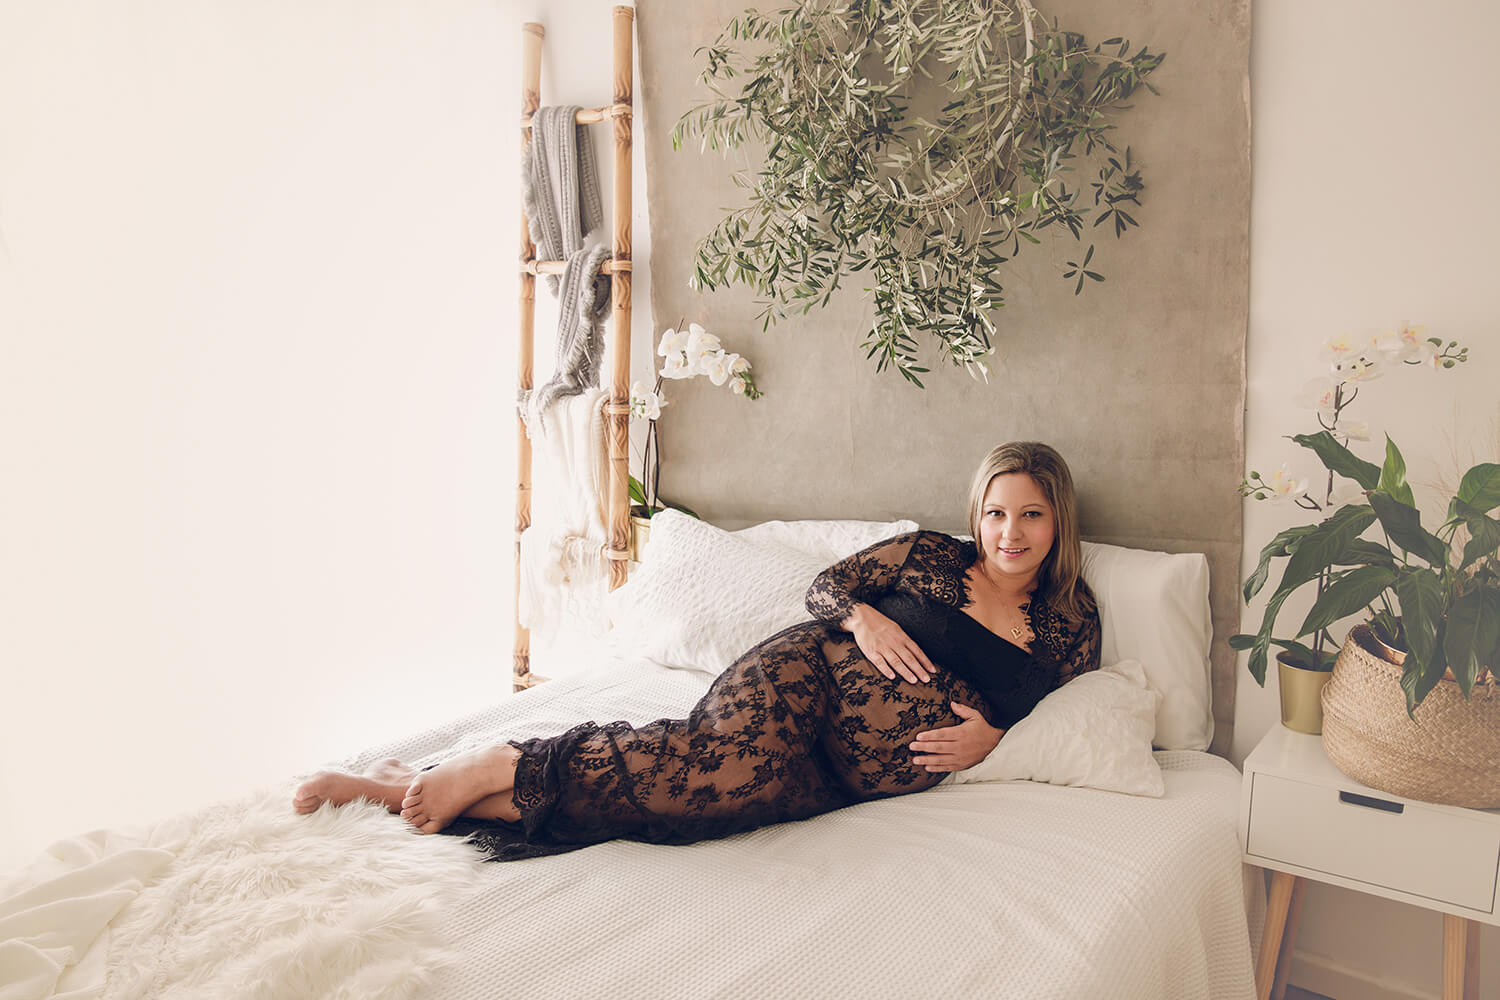 a gold coast pregnant mum dressed in a black lace dress photographed on a bed by Lifetime Stories Photography maternity photographer located in Rochedale South